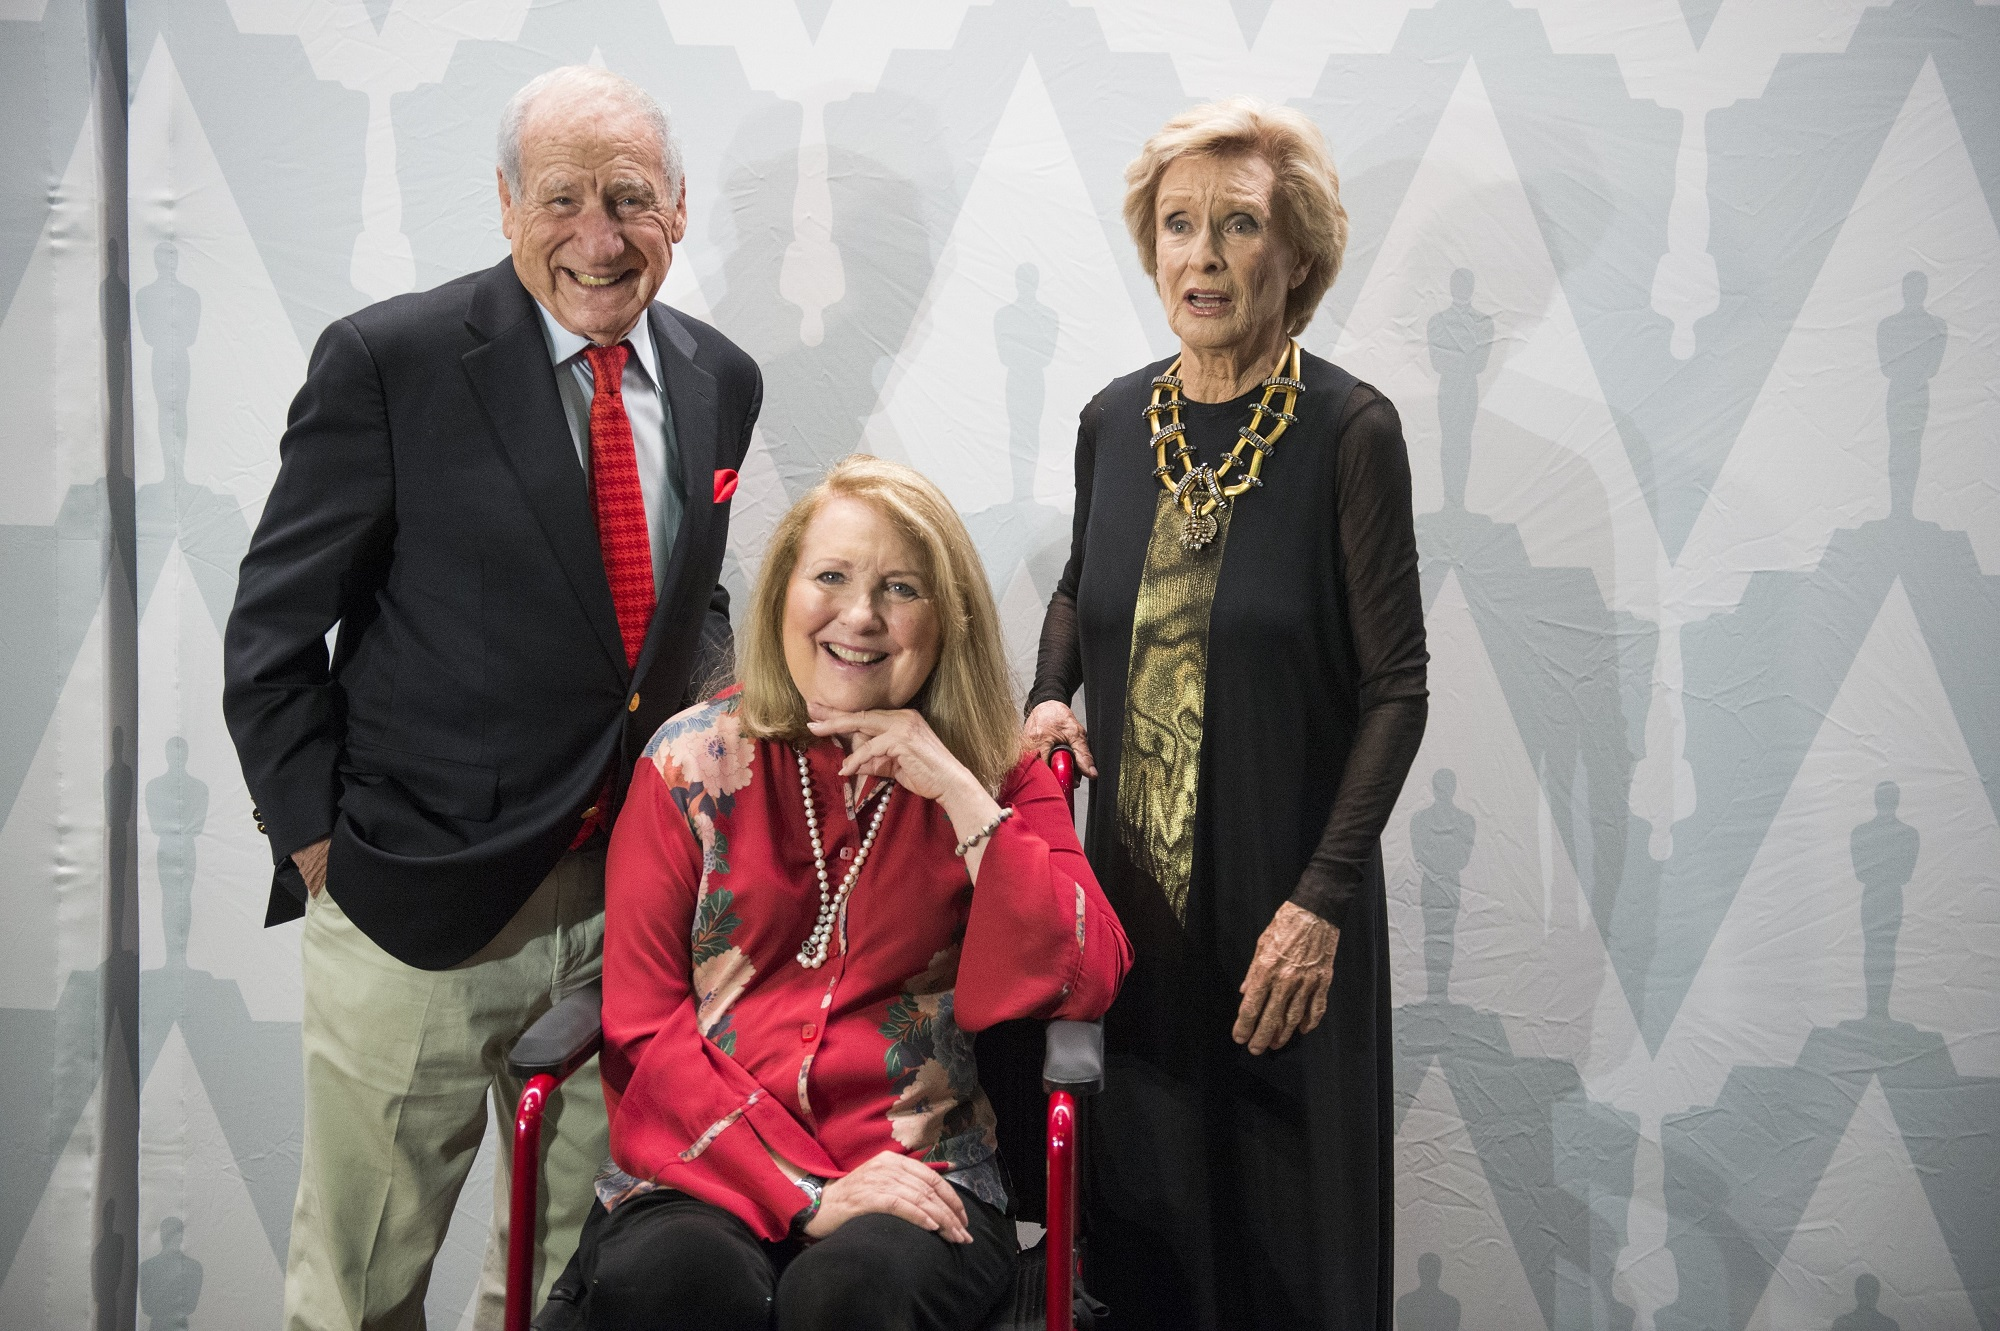 Mel Brooks, Teri Garr, and Cloris Leachman of Young Frankenstein